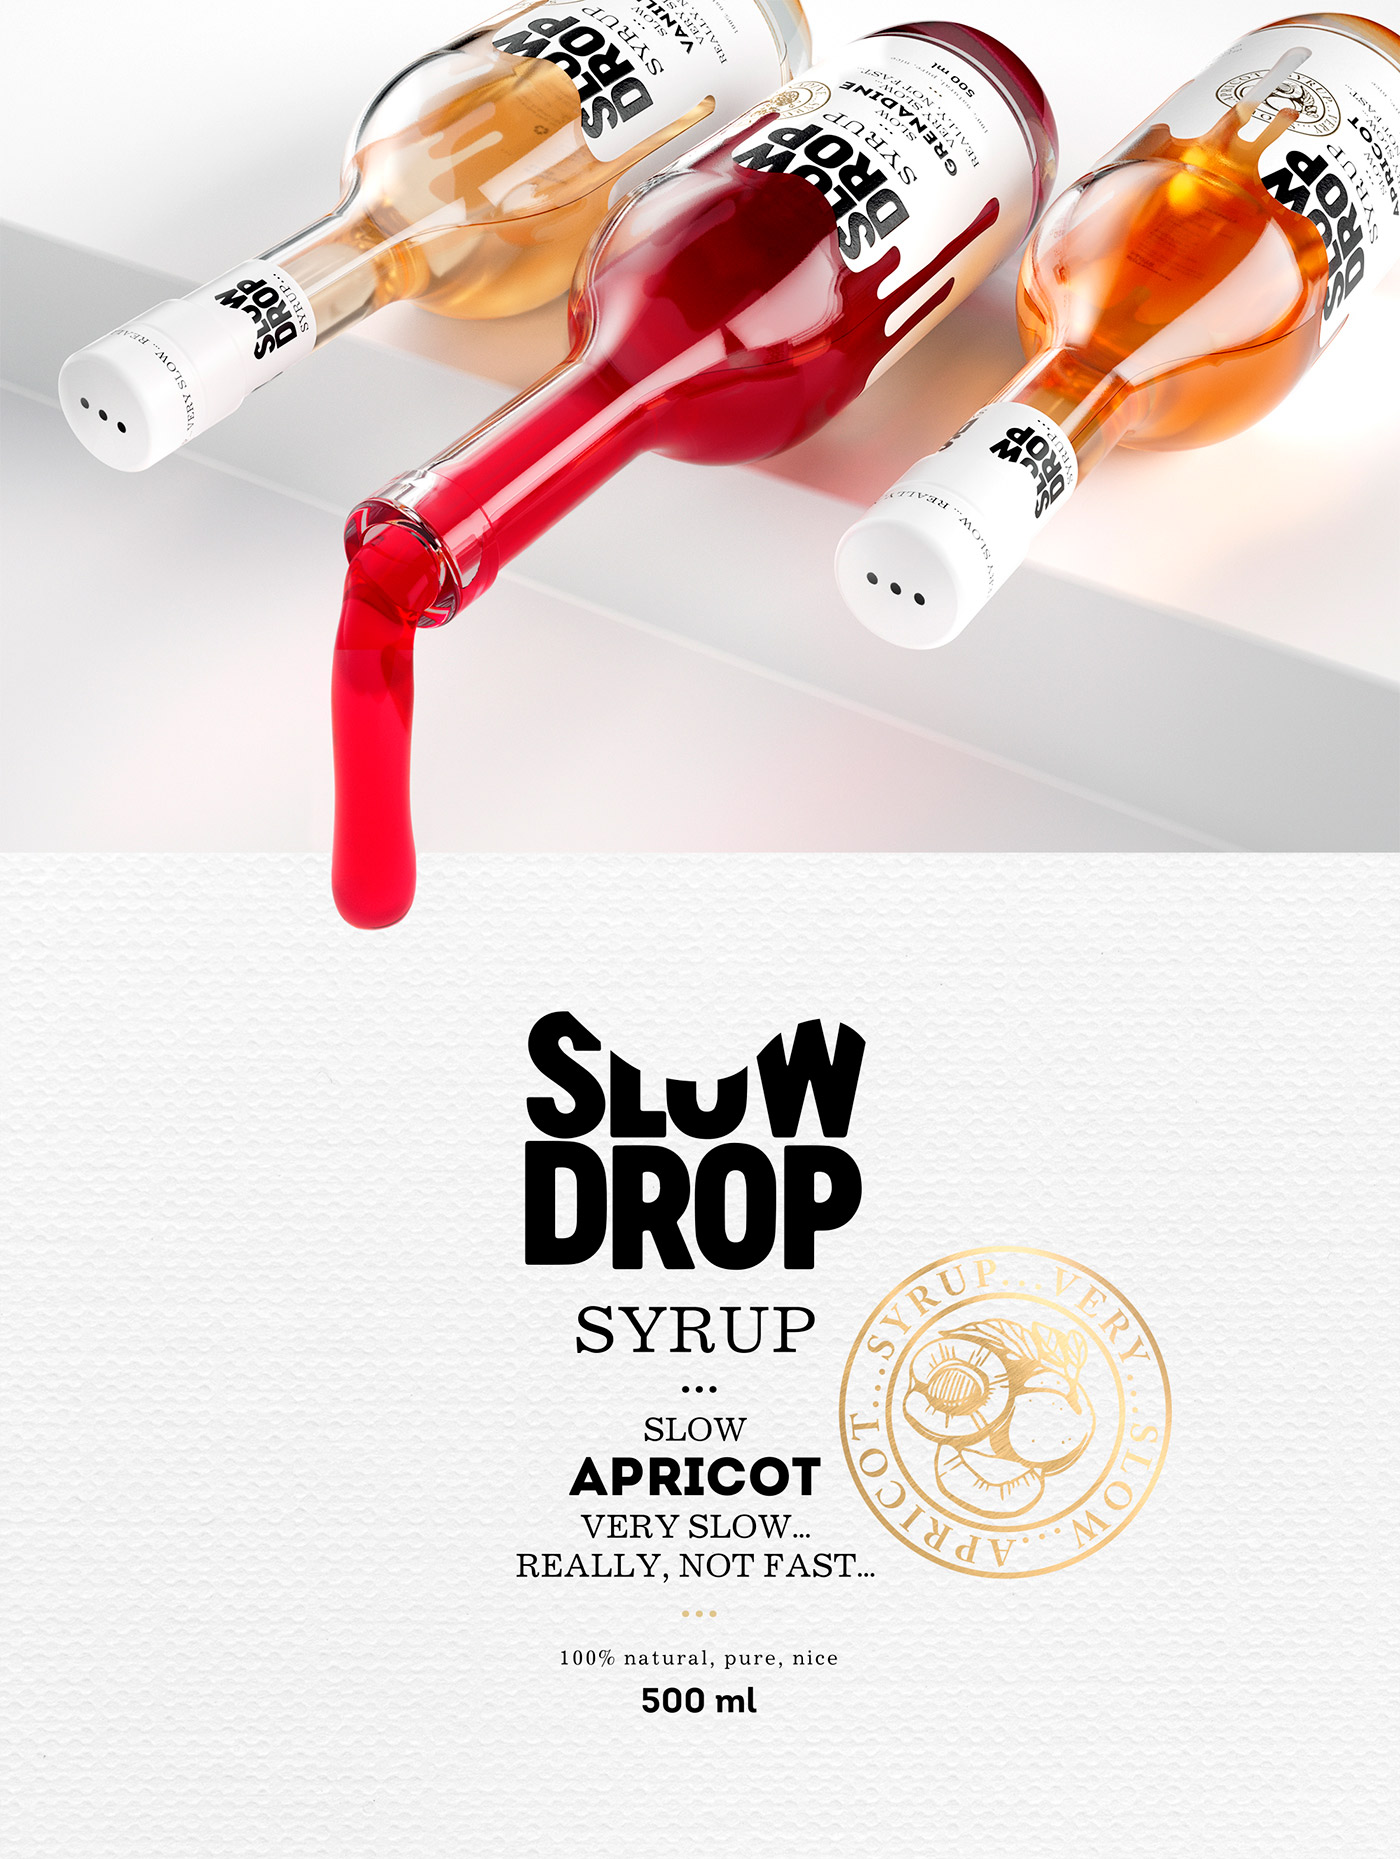 Packaging and Branding Inspiration: Slow drop by Stas Neretin